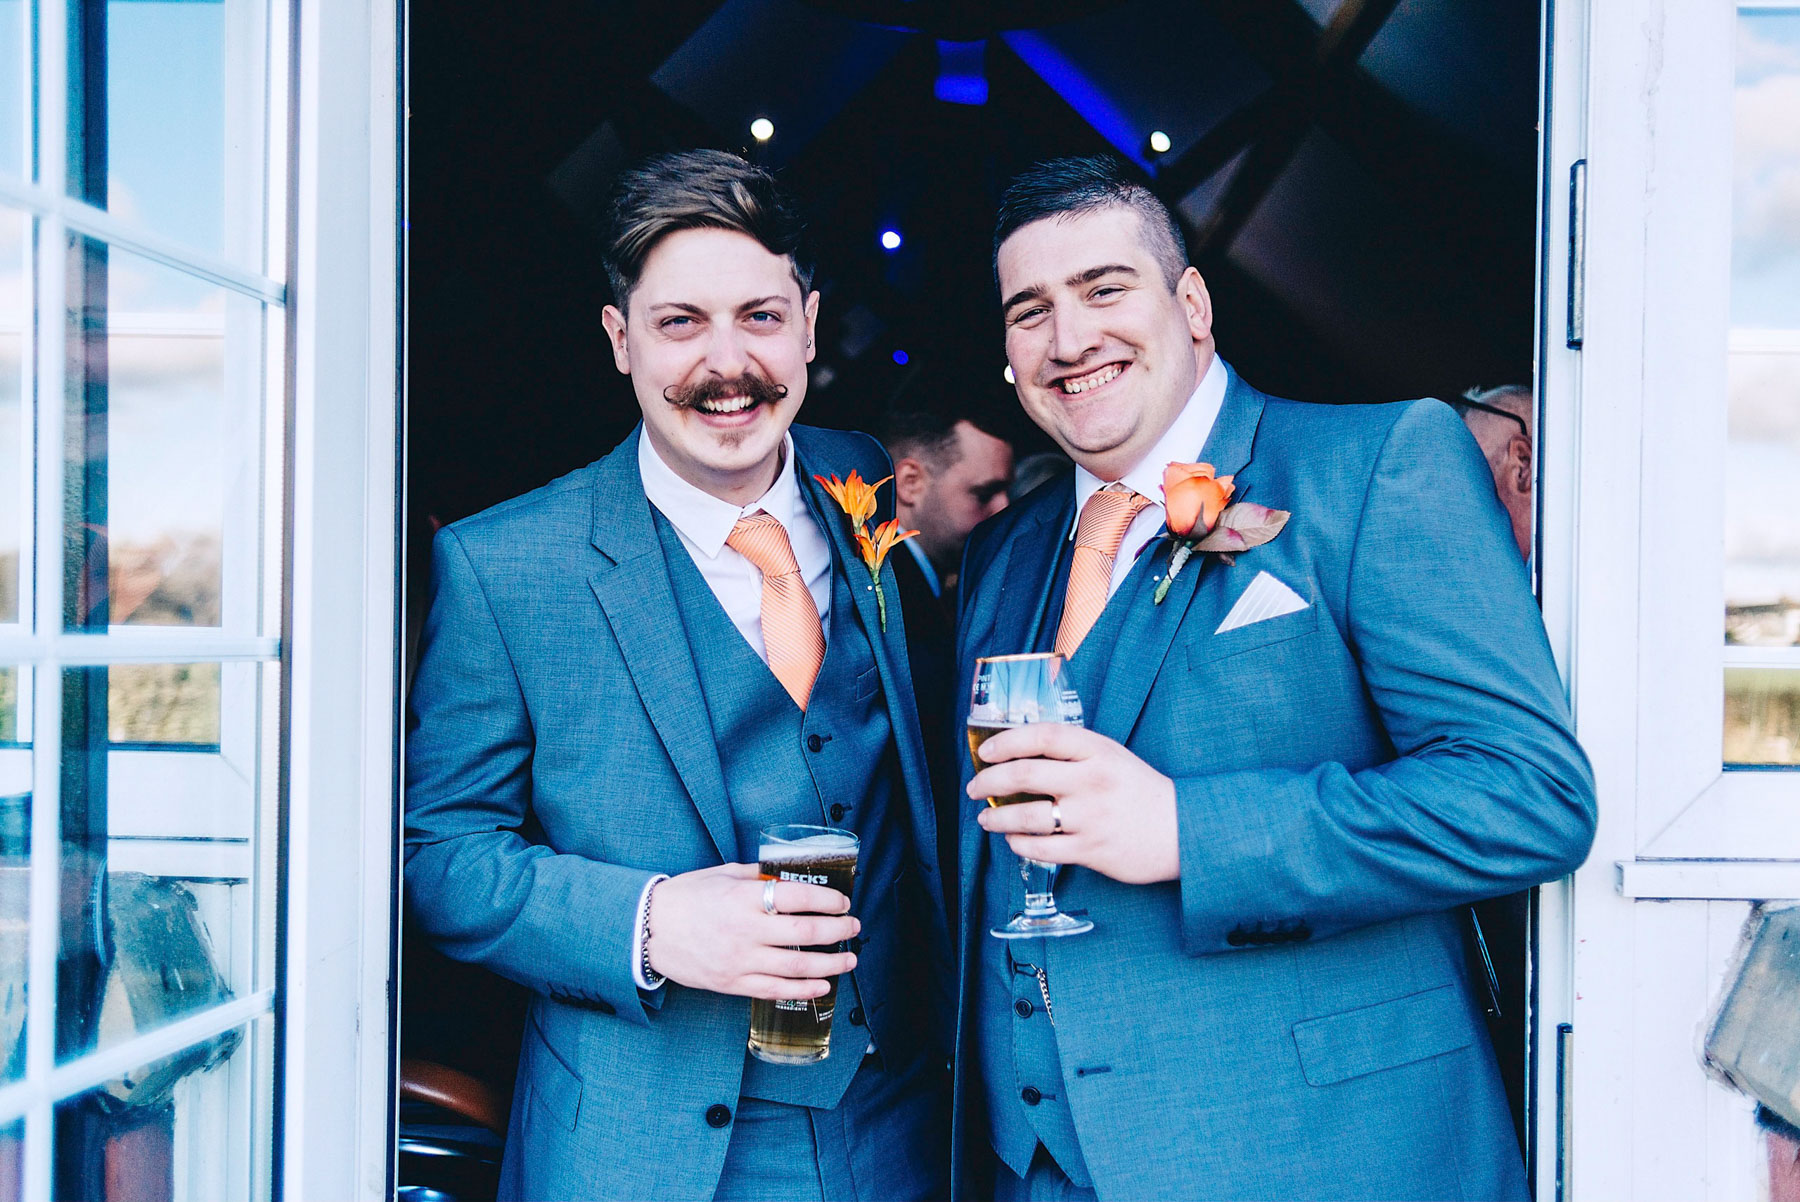 Groom and best man pose for photo